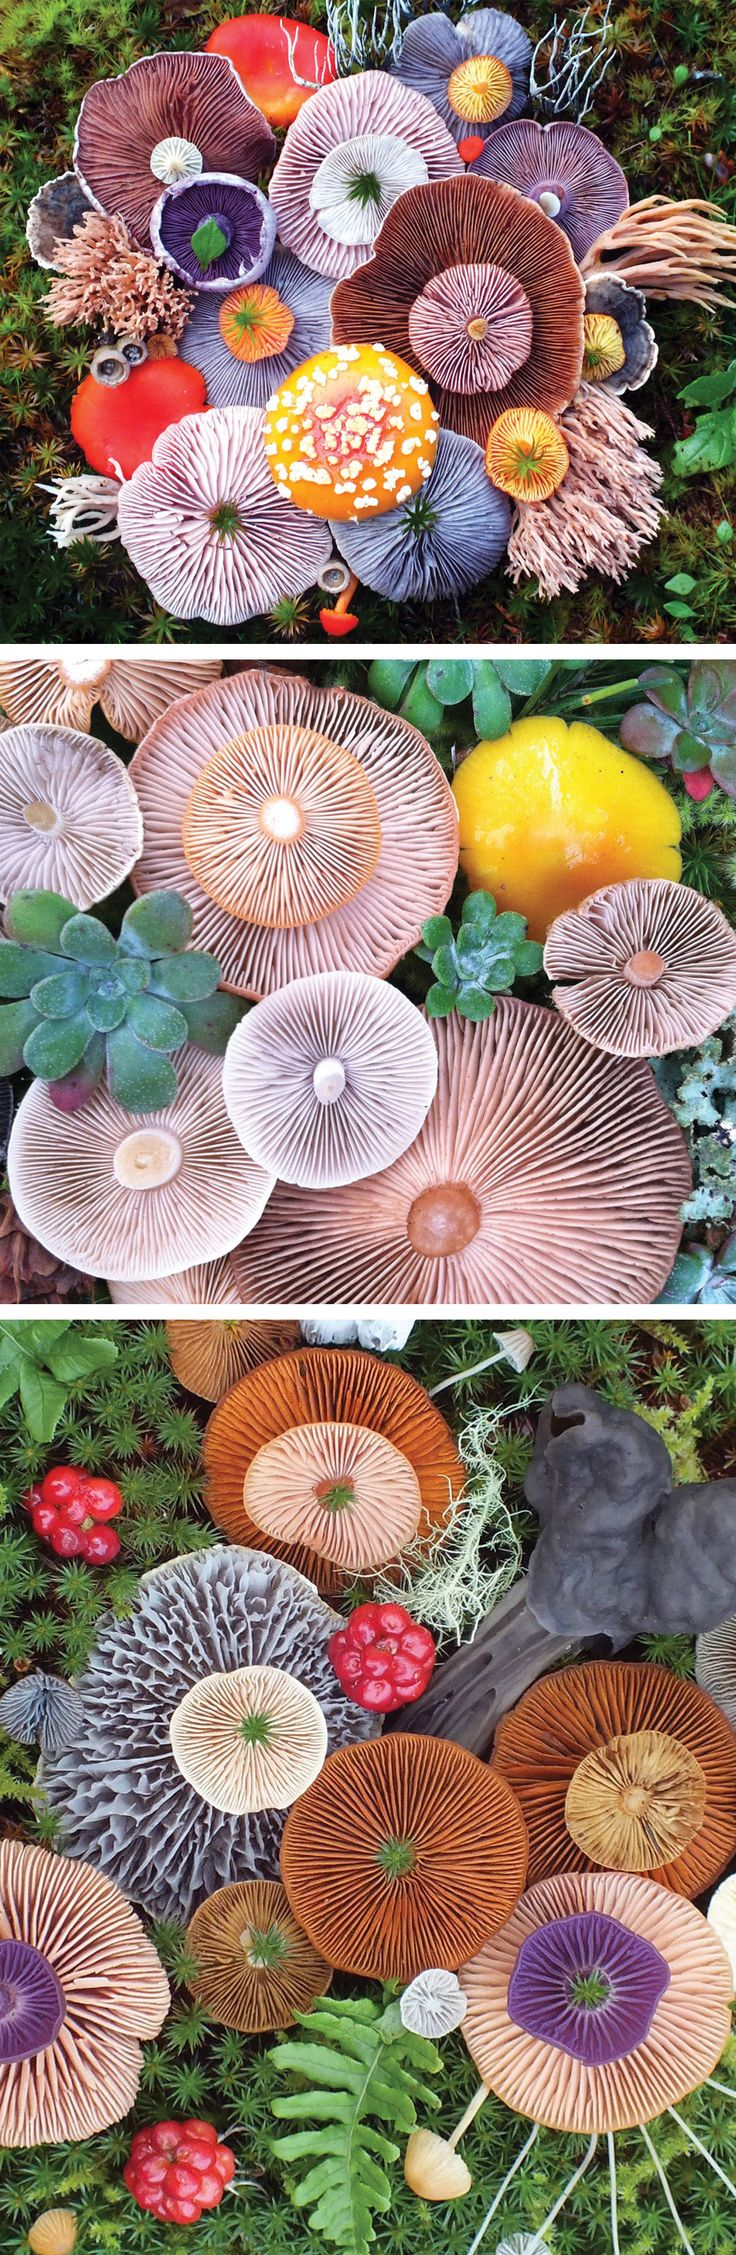 Vibrant Mushroom Arrangements Photographed by Jill Bliss